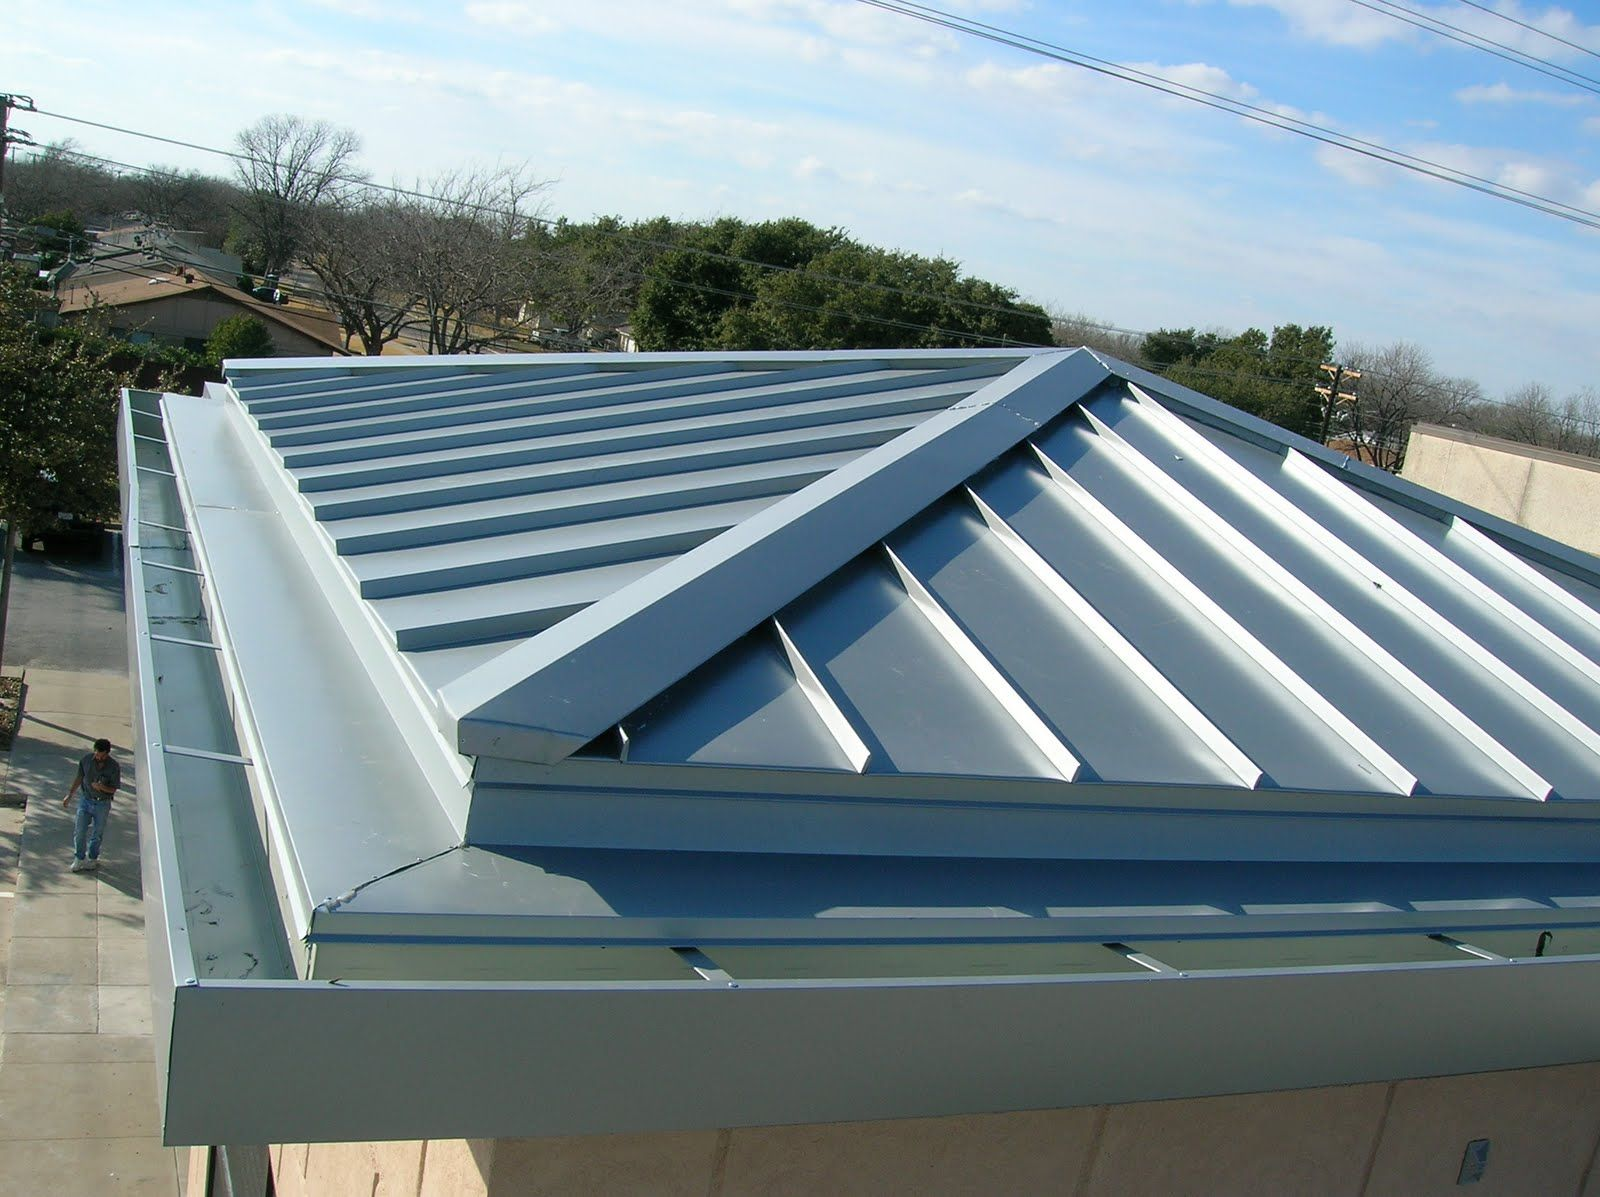 Painted Metal Roofing & Siding Metal roof installation